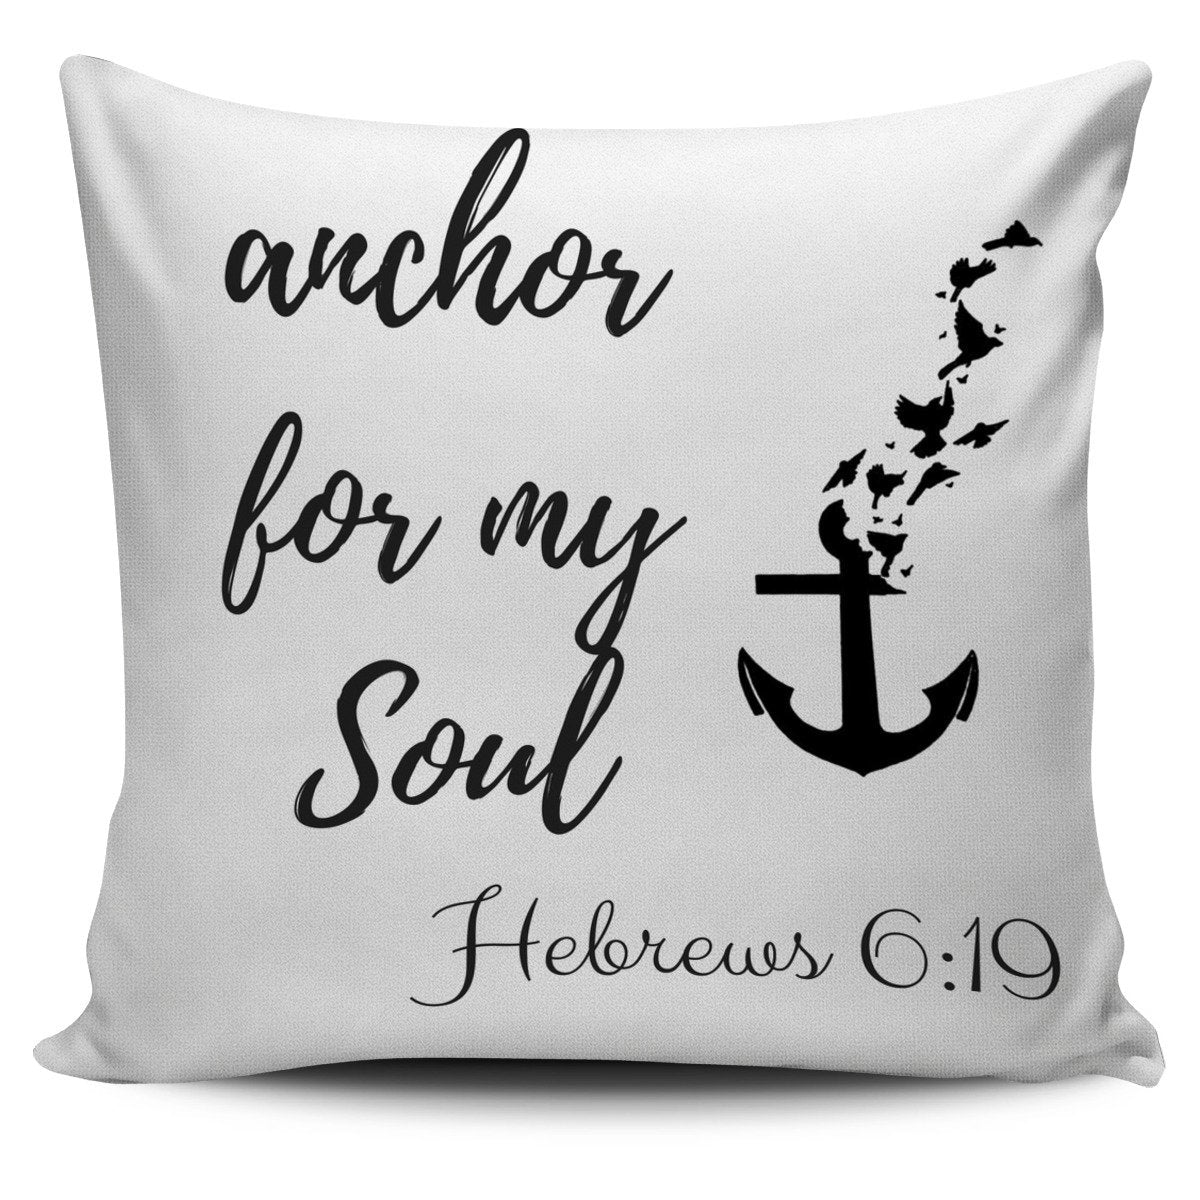 """Anchor for my soul"" Pillow"